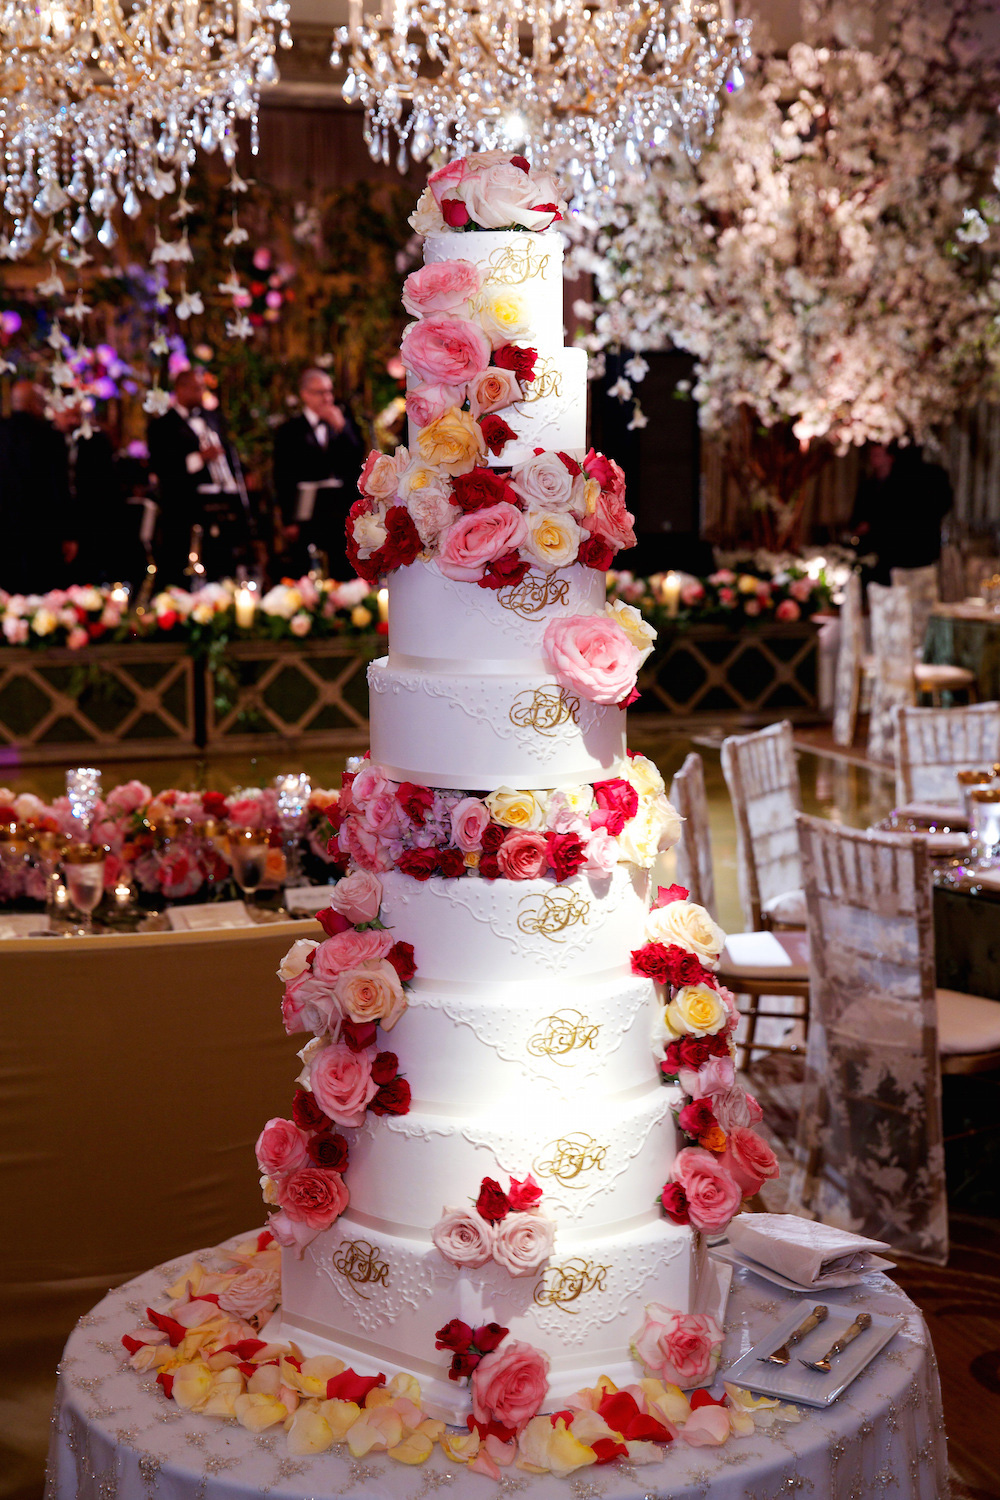 Huge and tall wedding cake with fresh red and pink flowers